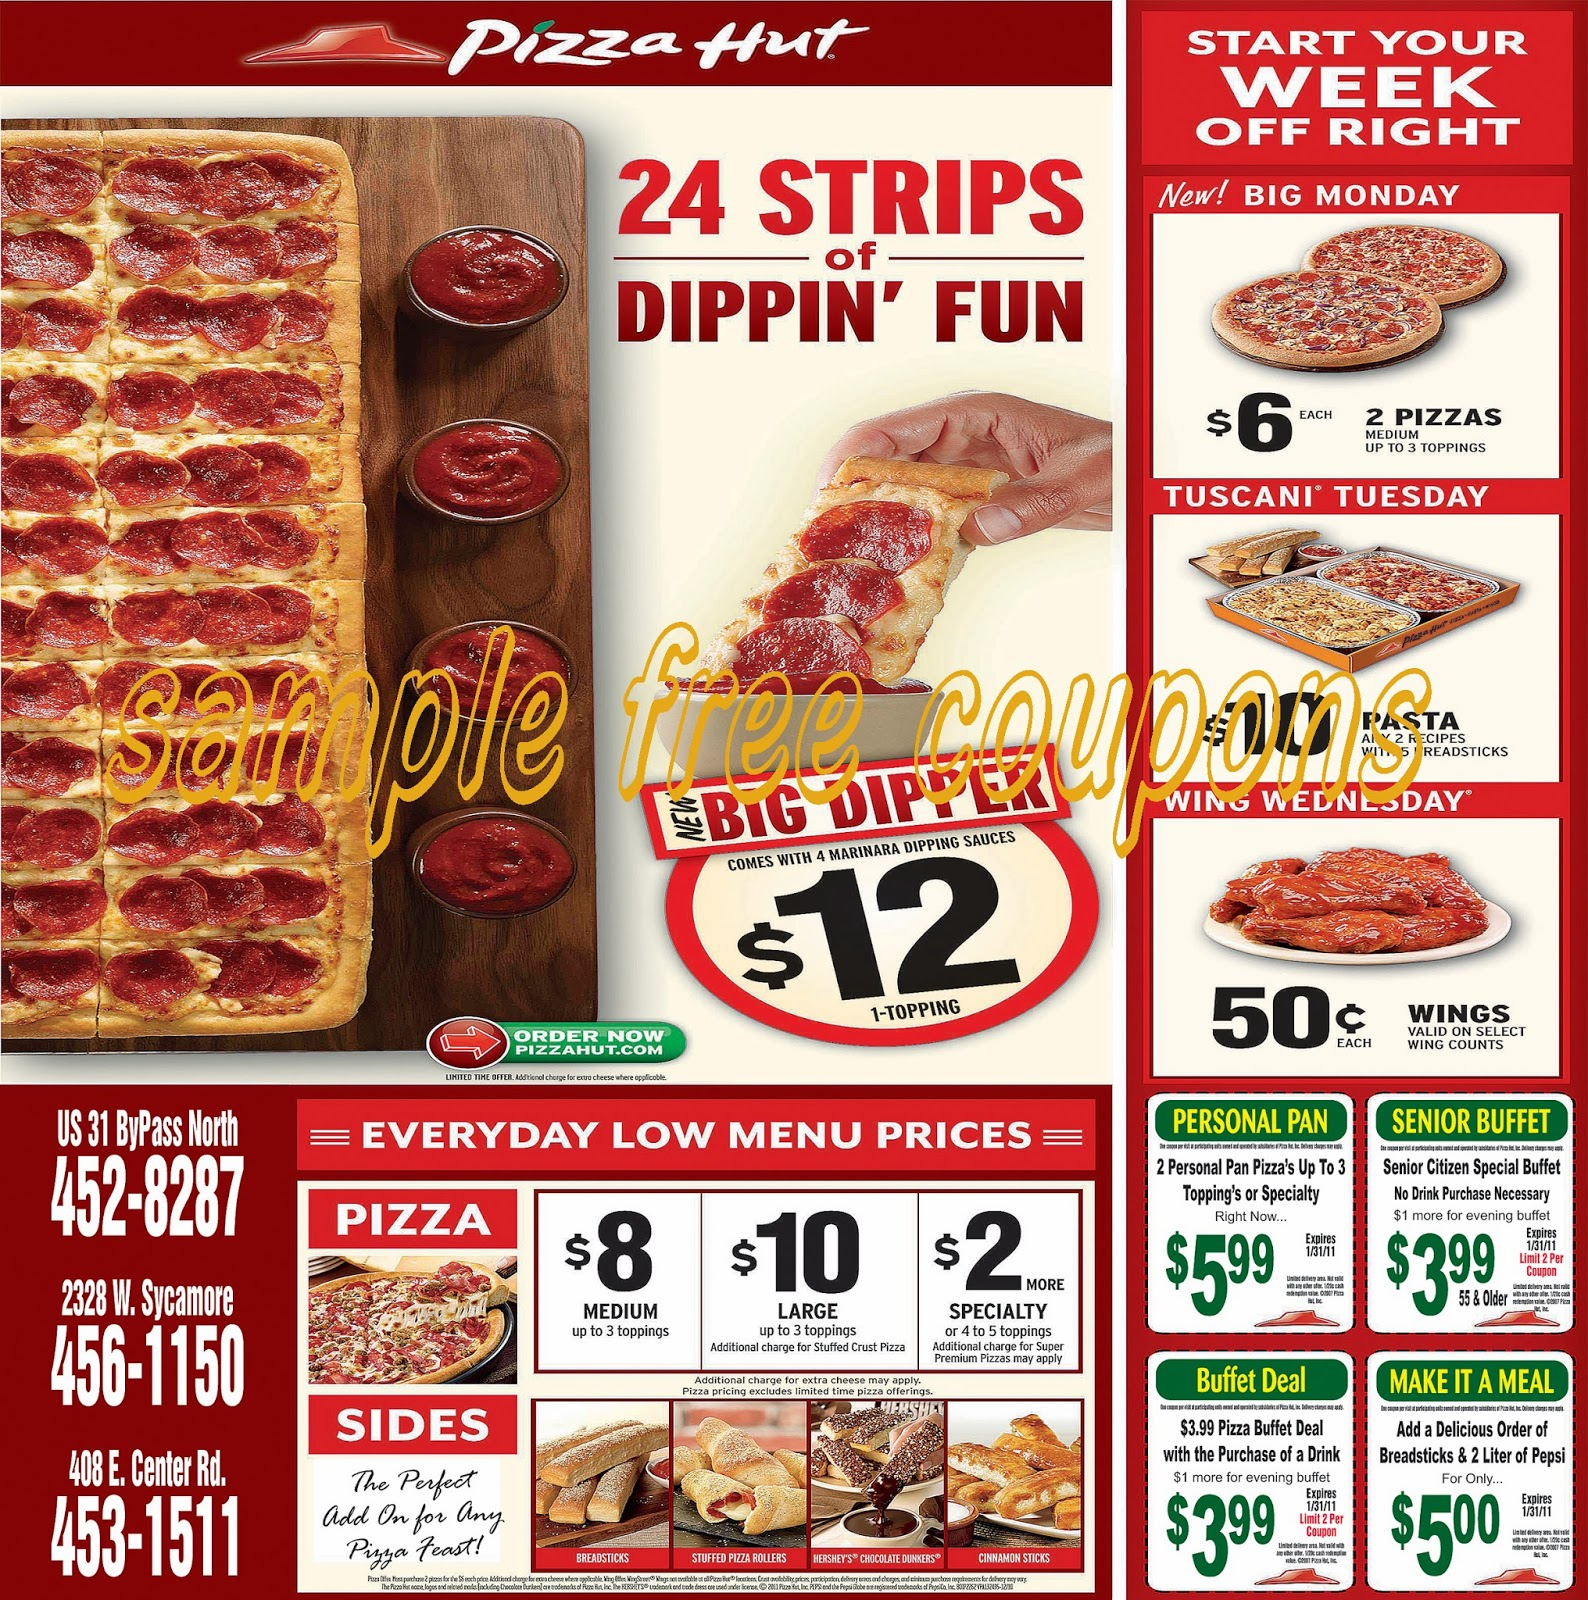 Pizza hut coupon code free delivery